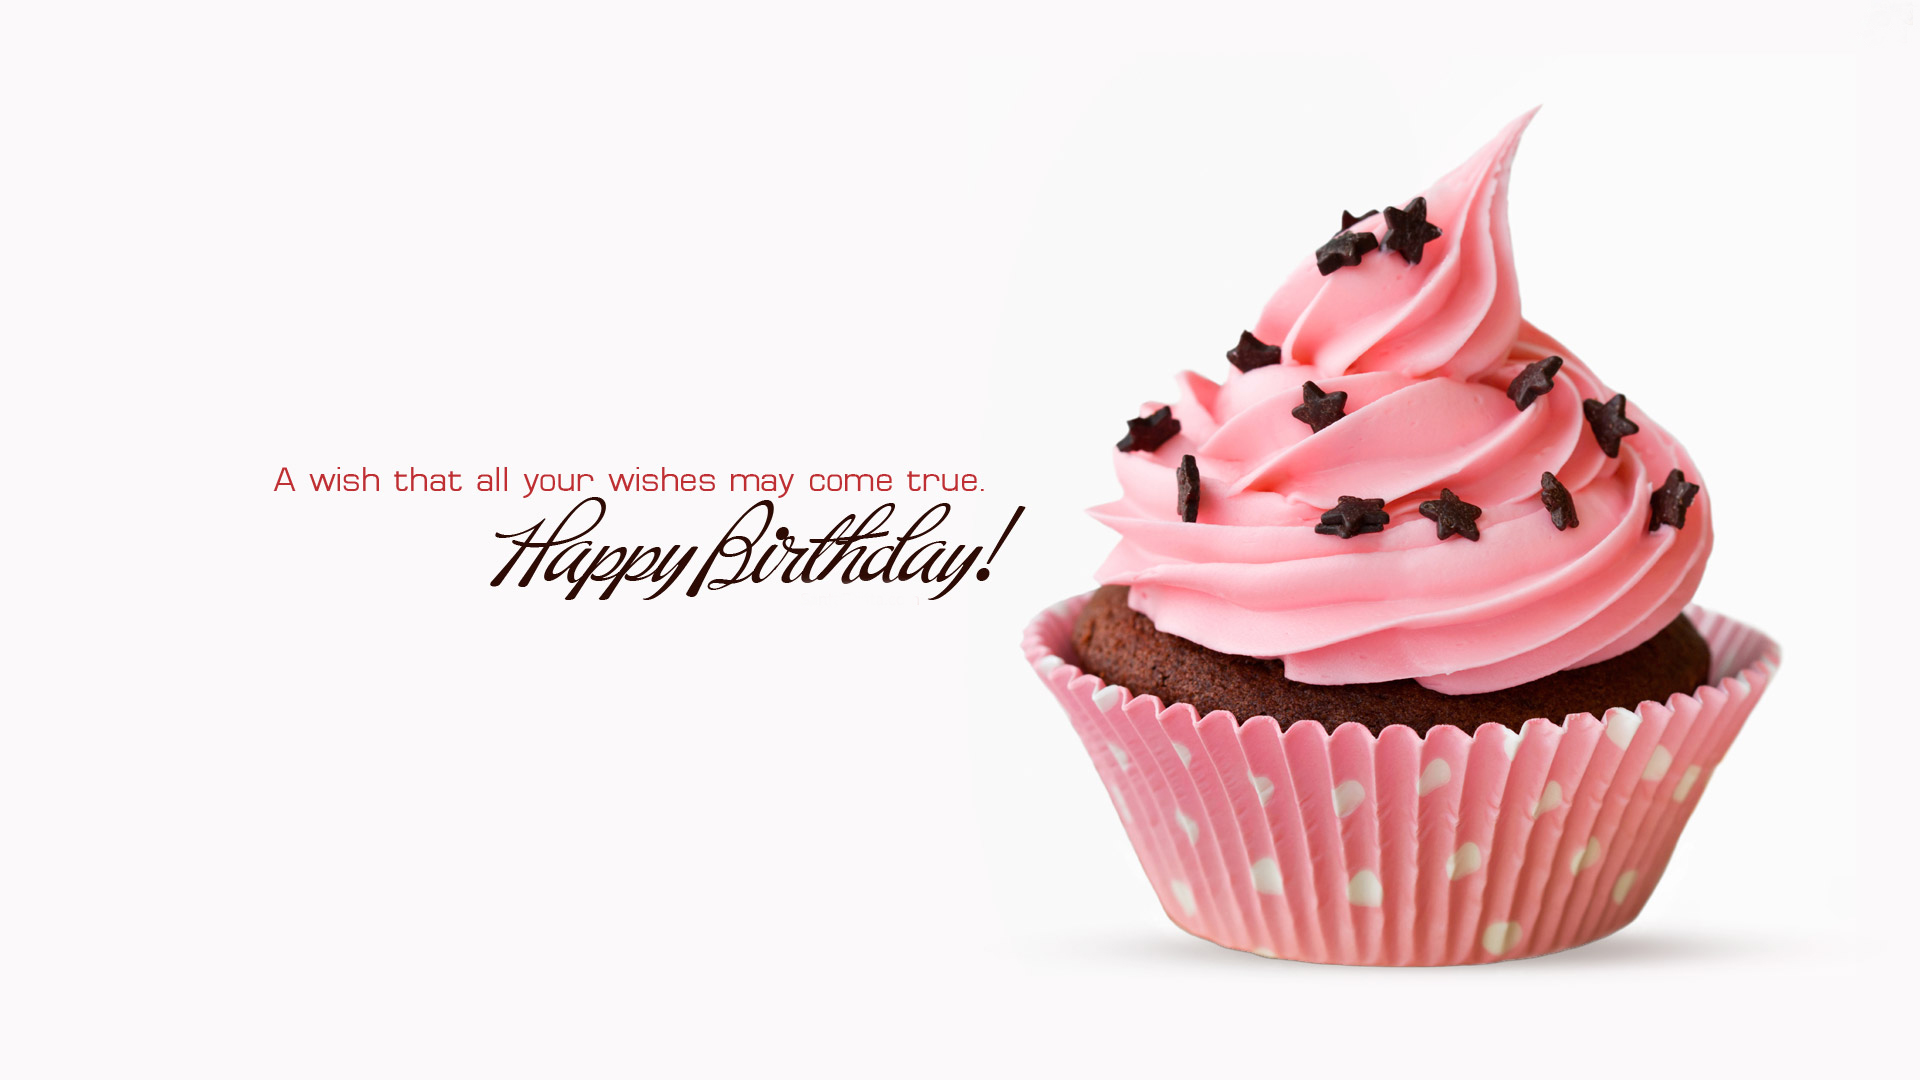 birthday ke wallpaper ; 35850795-happy-birthday-cake-wallpaper